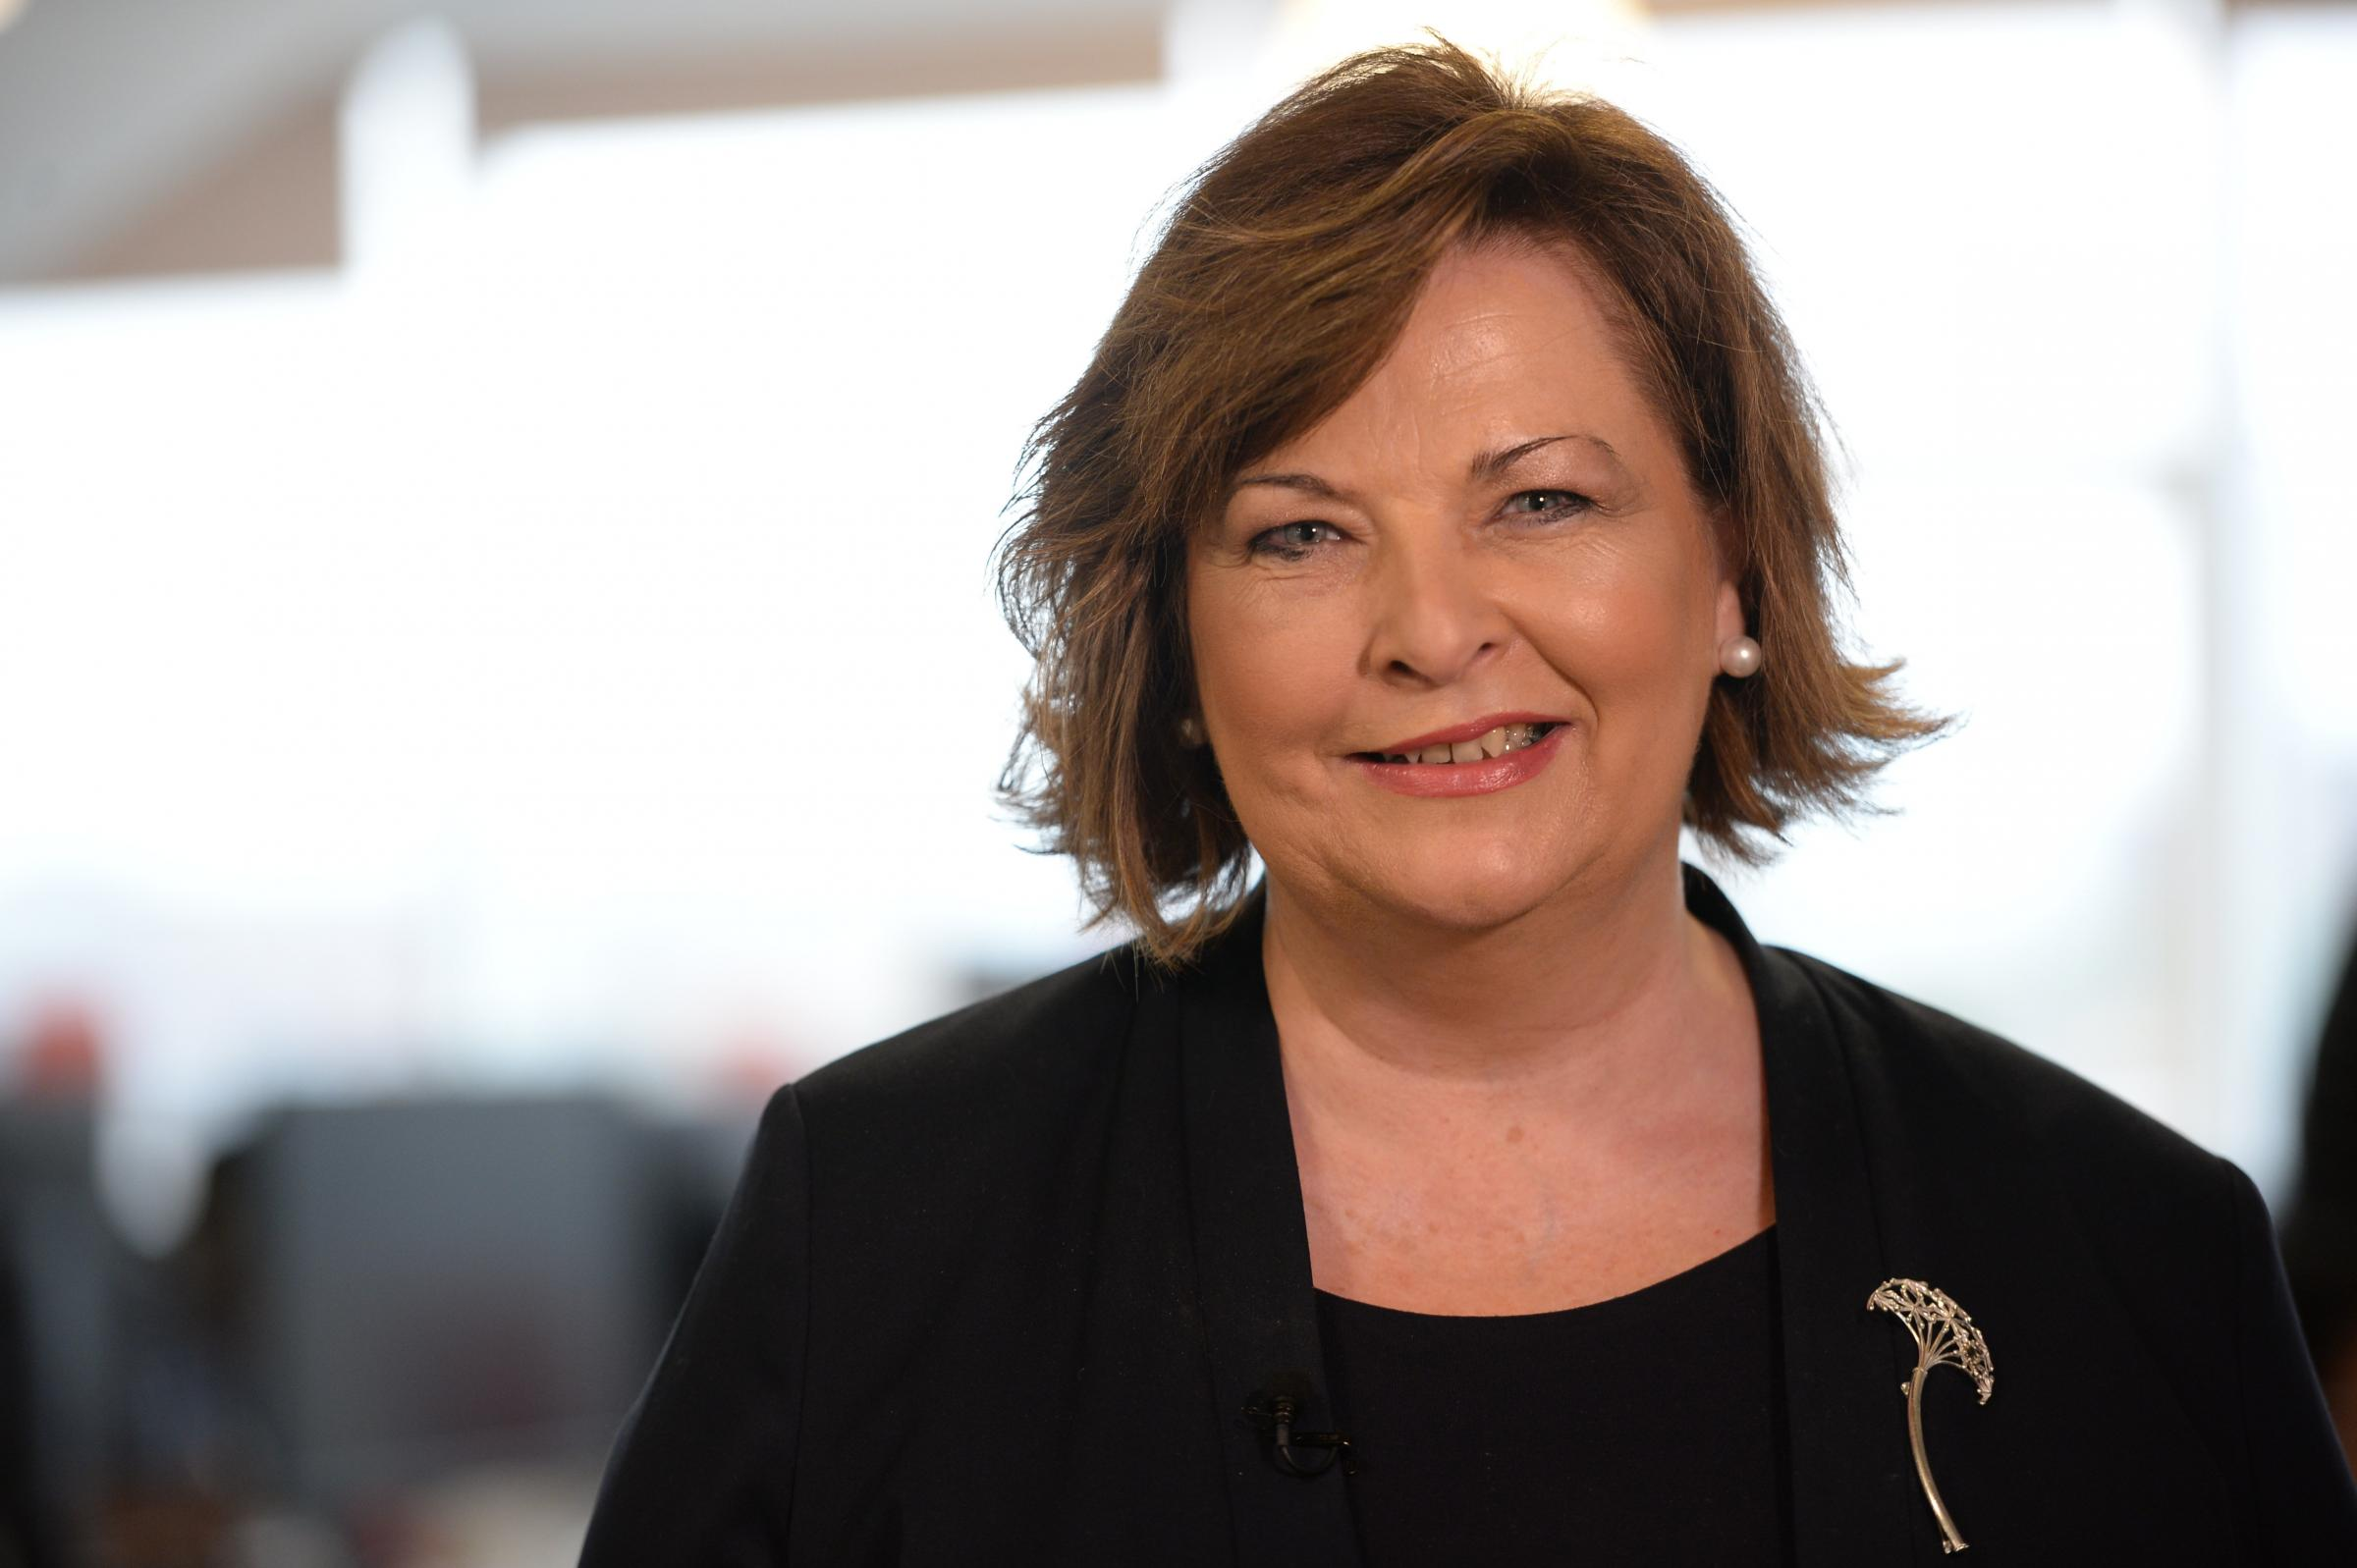 Fiona Hyslop represented the SNP on Thursday's edition